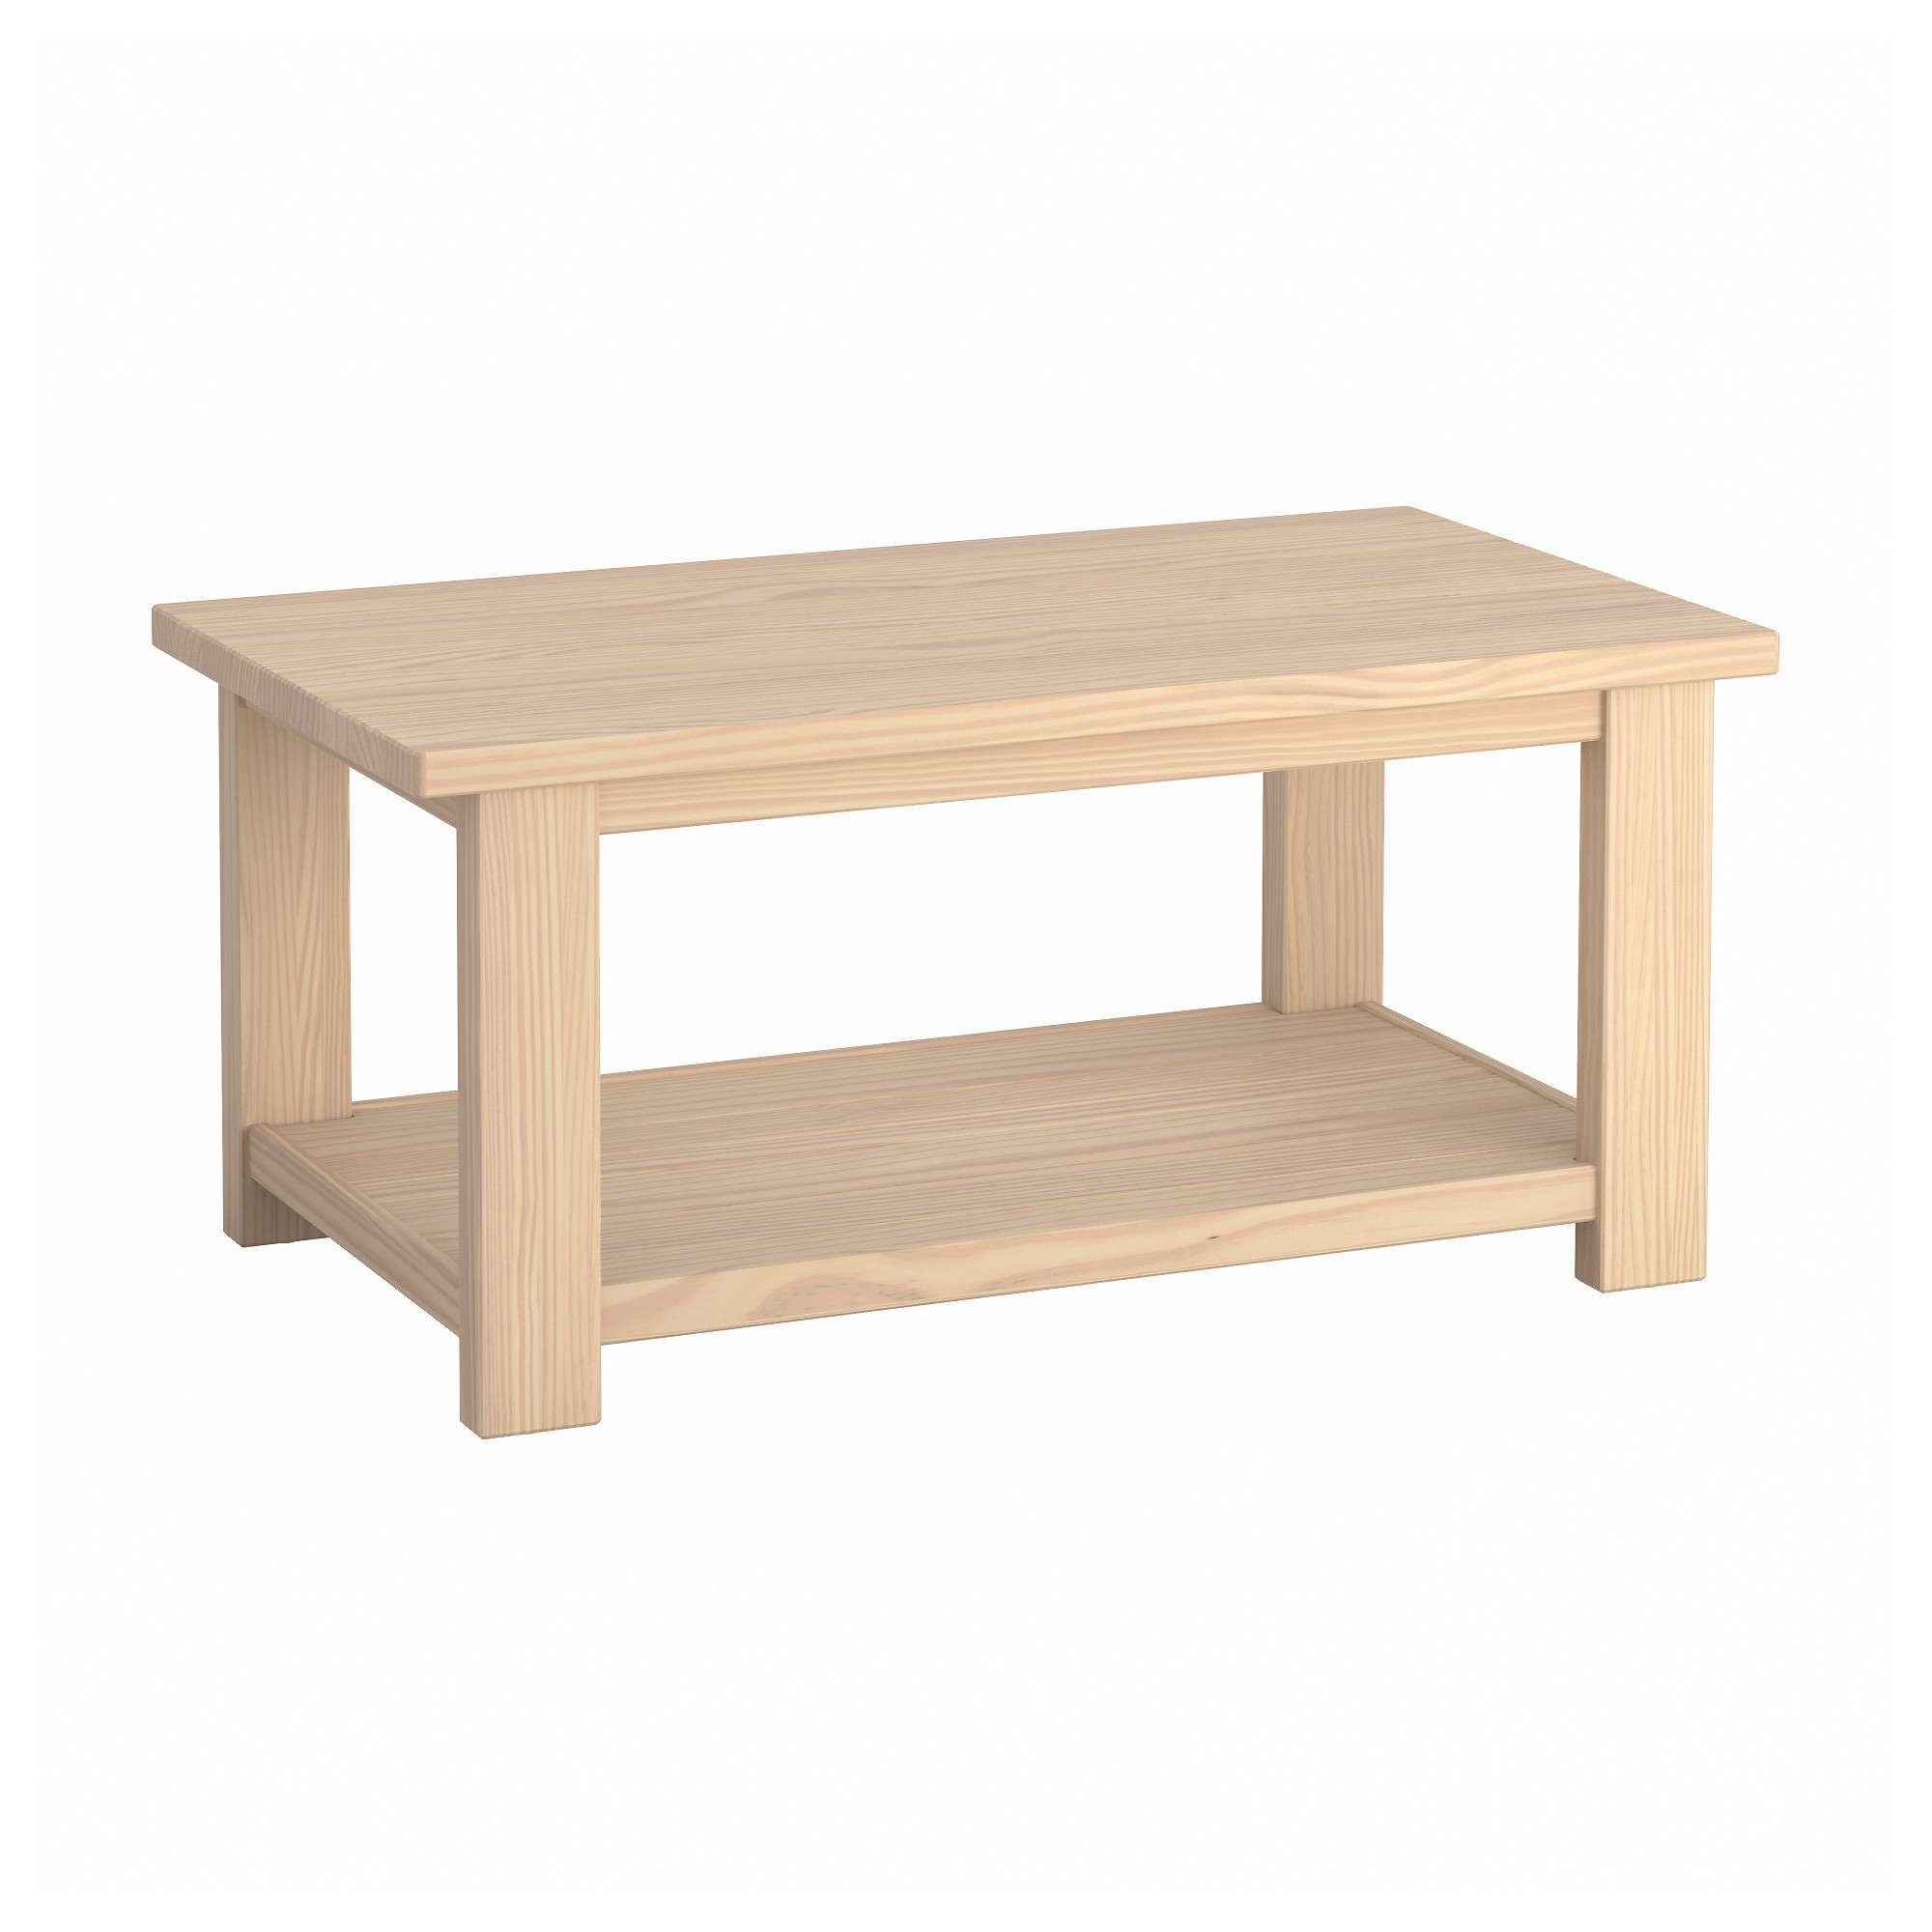 Preferred Pine Coffee Tables Regarding Rekarne Coffee Table – Ikea (View 15 of 20)